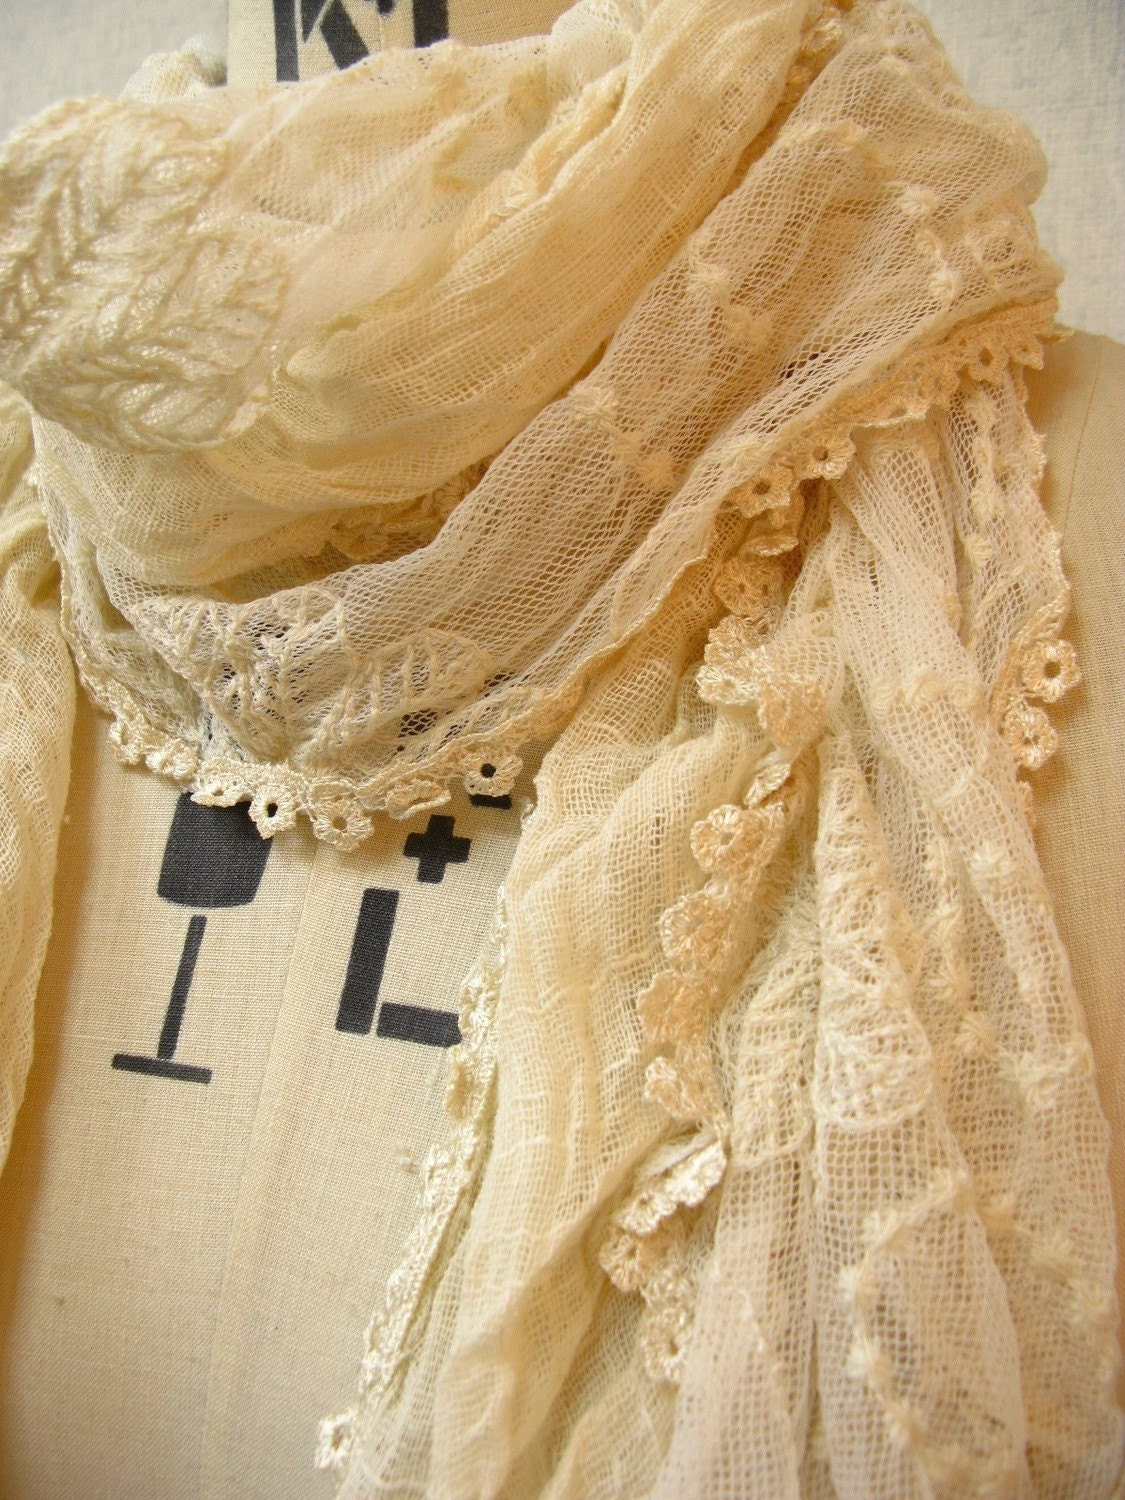 The Summer Crinkle Cotton with Lace Trimming Scarf,Ivory Color